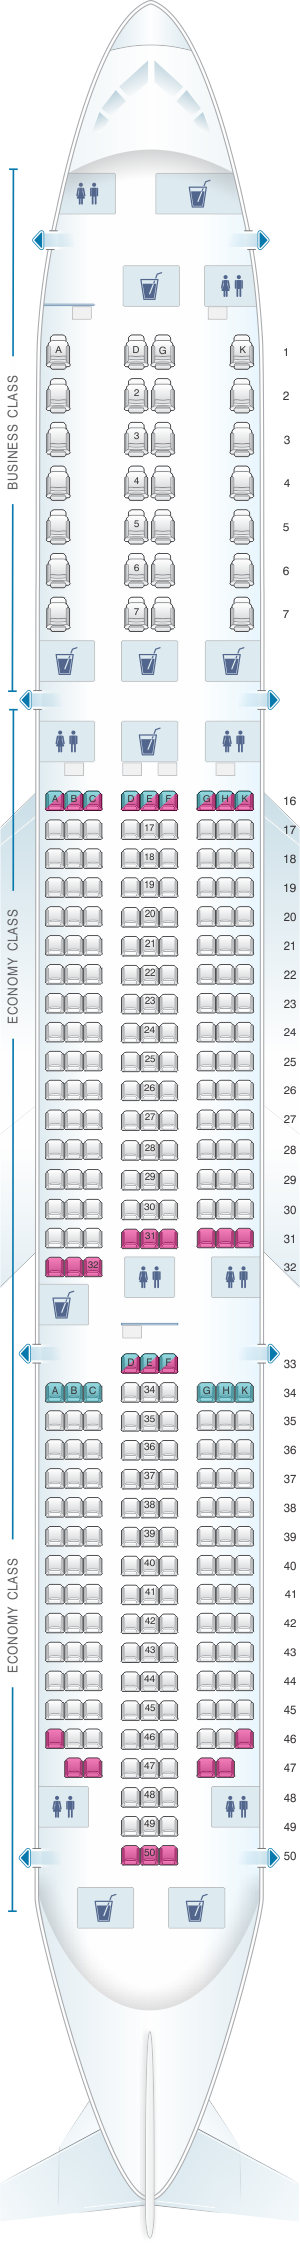 Seat map for Vietnam Airlines Boeing B787-9 V2